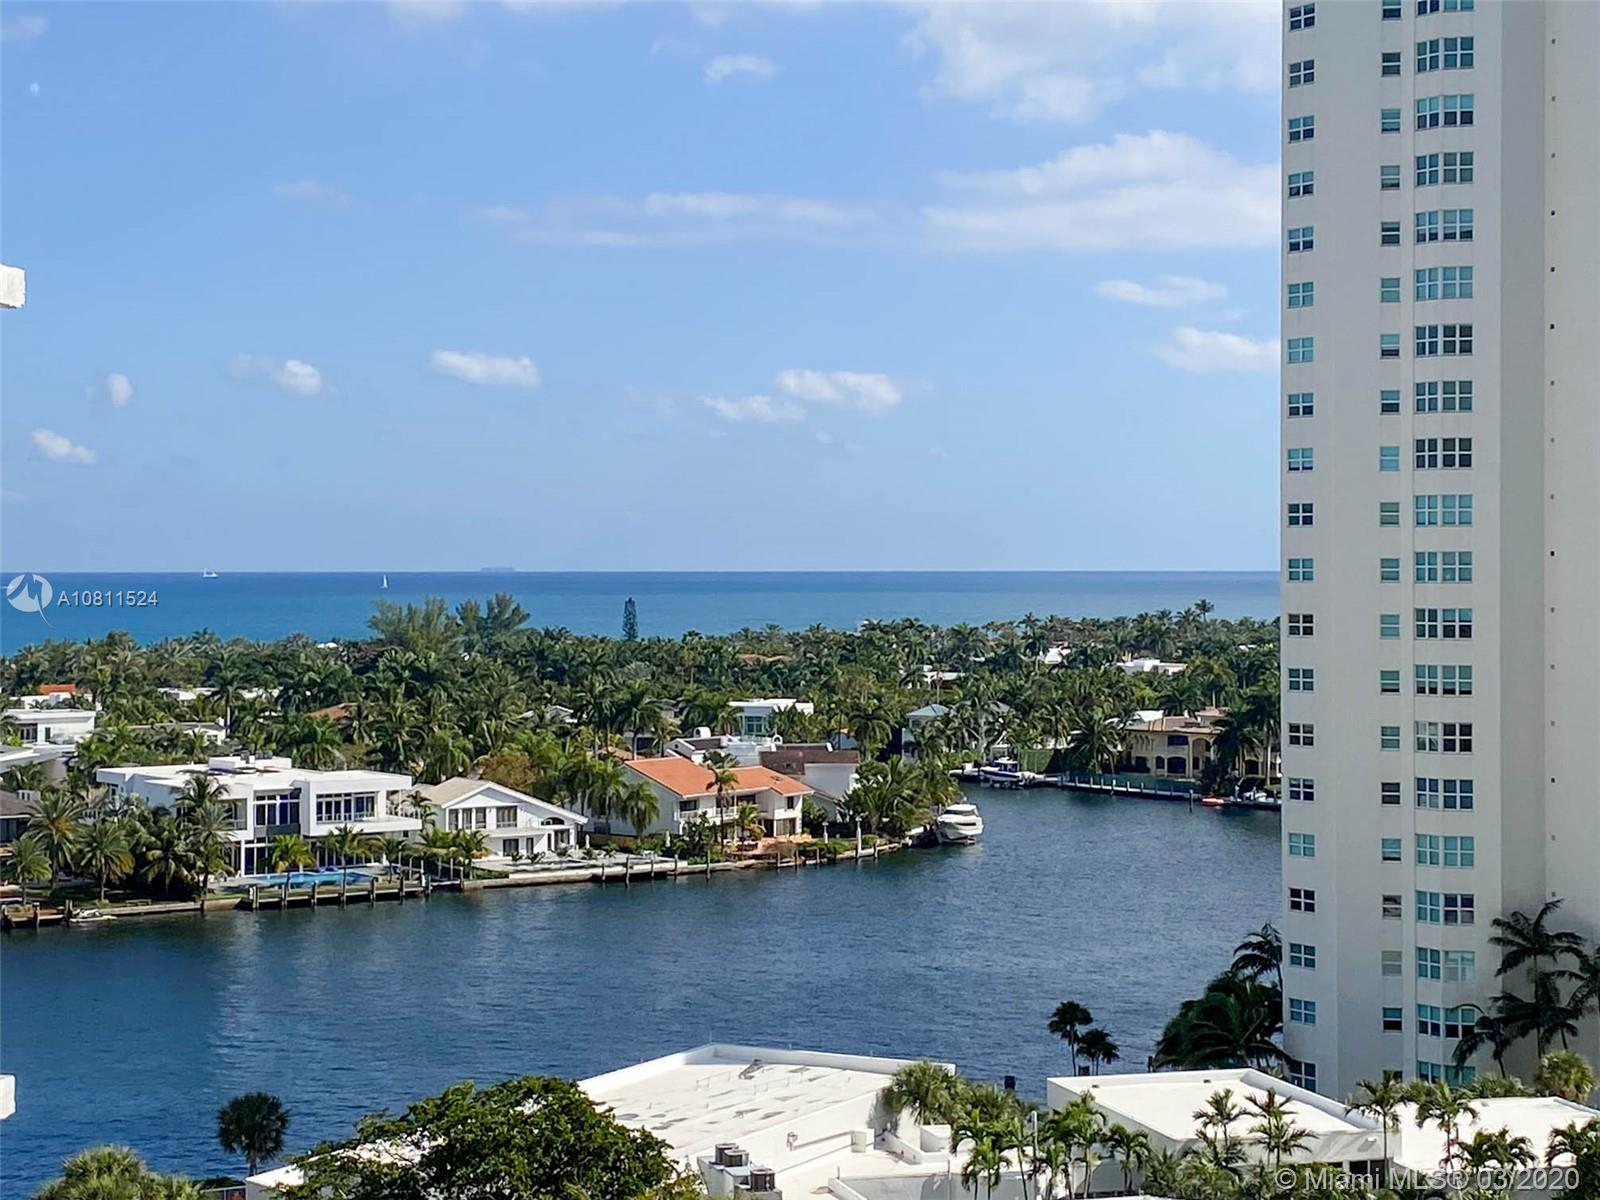 20505 E Country Club Dr #1238 For Sale A10811524, FL